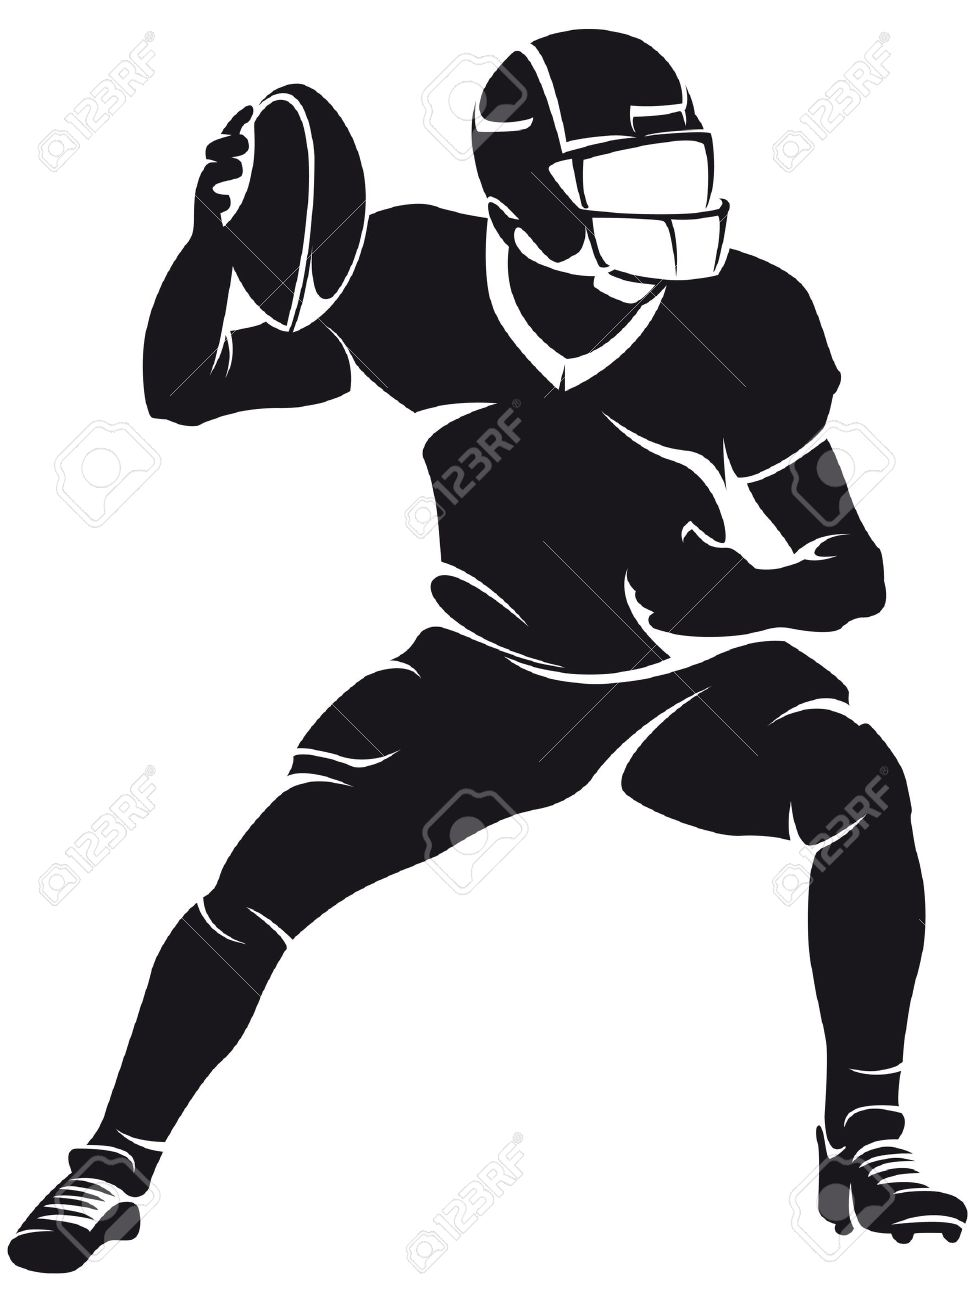 American football player, silhouette.